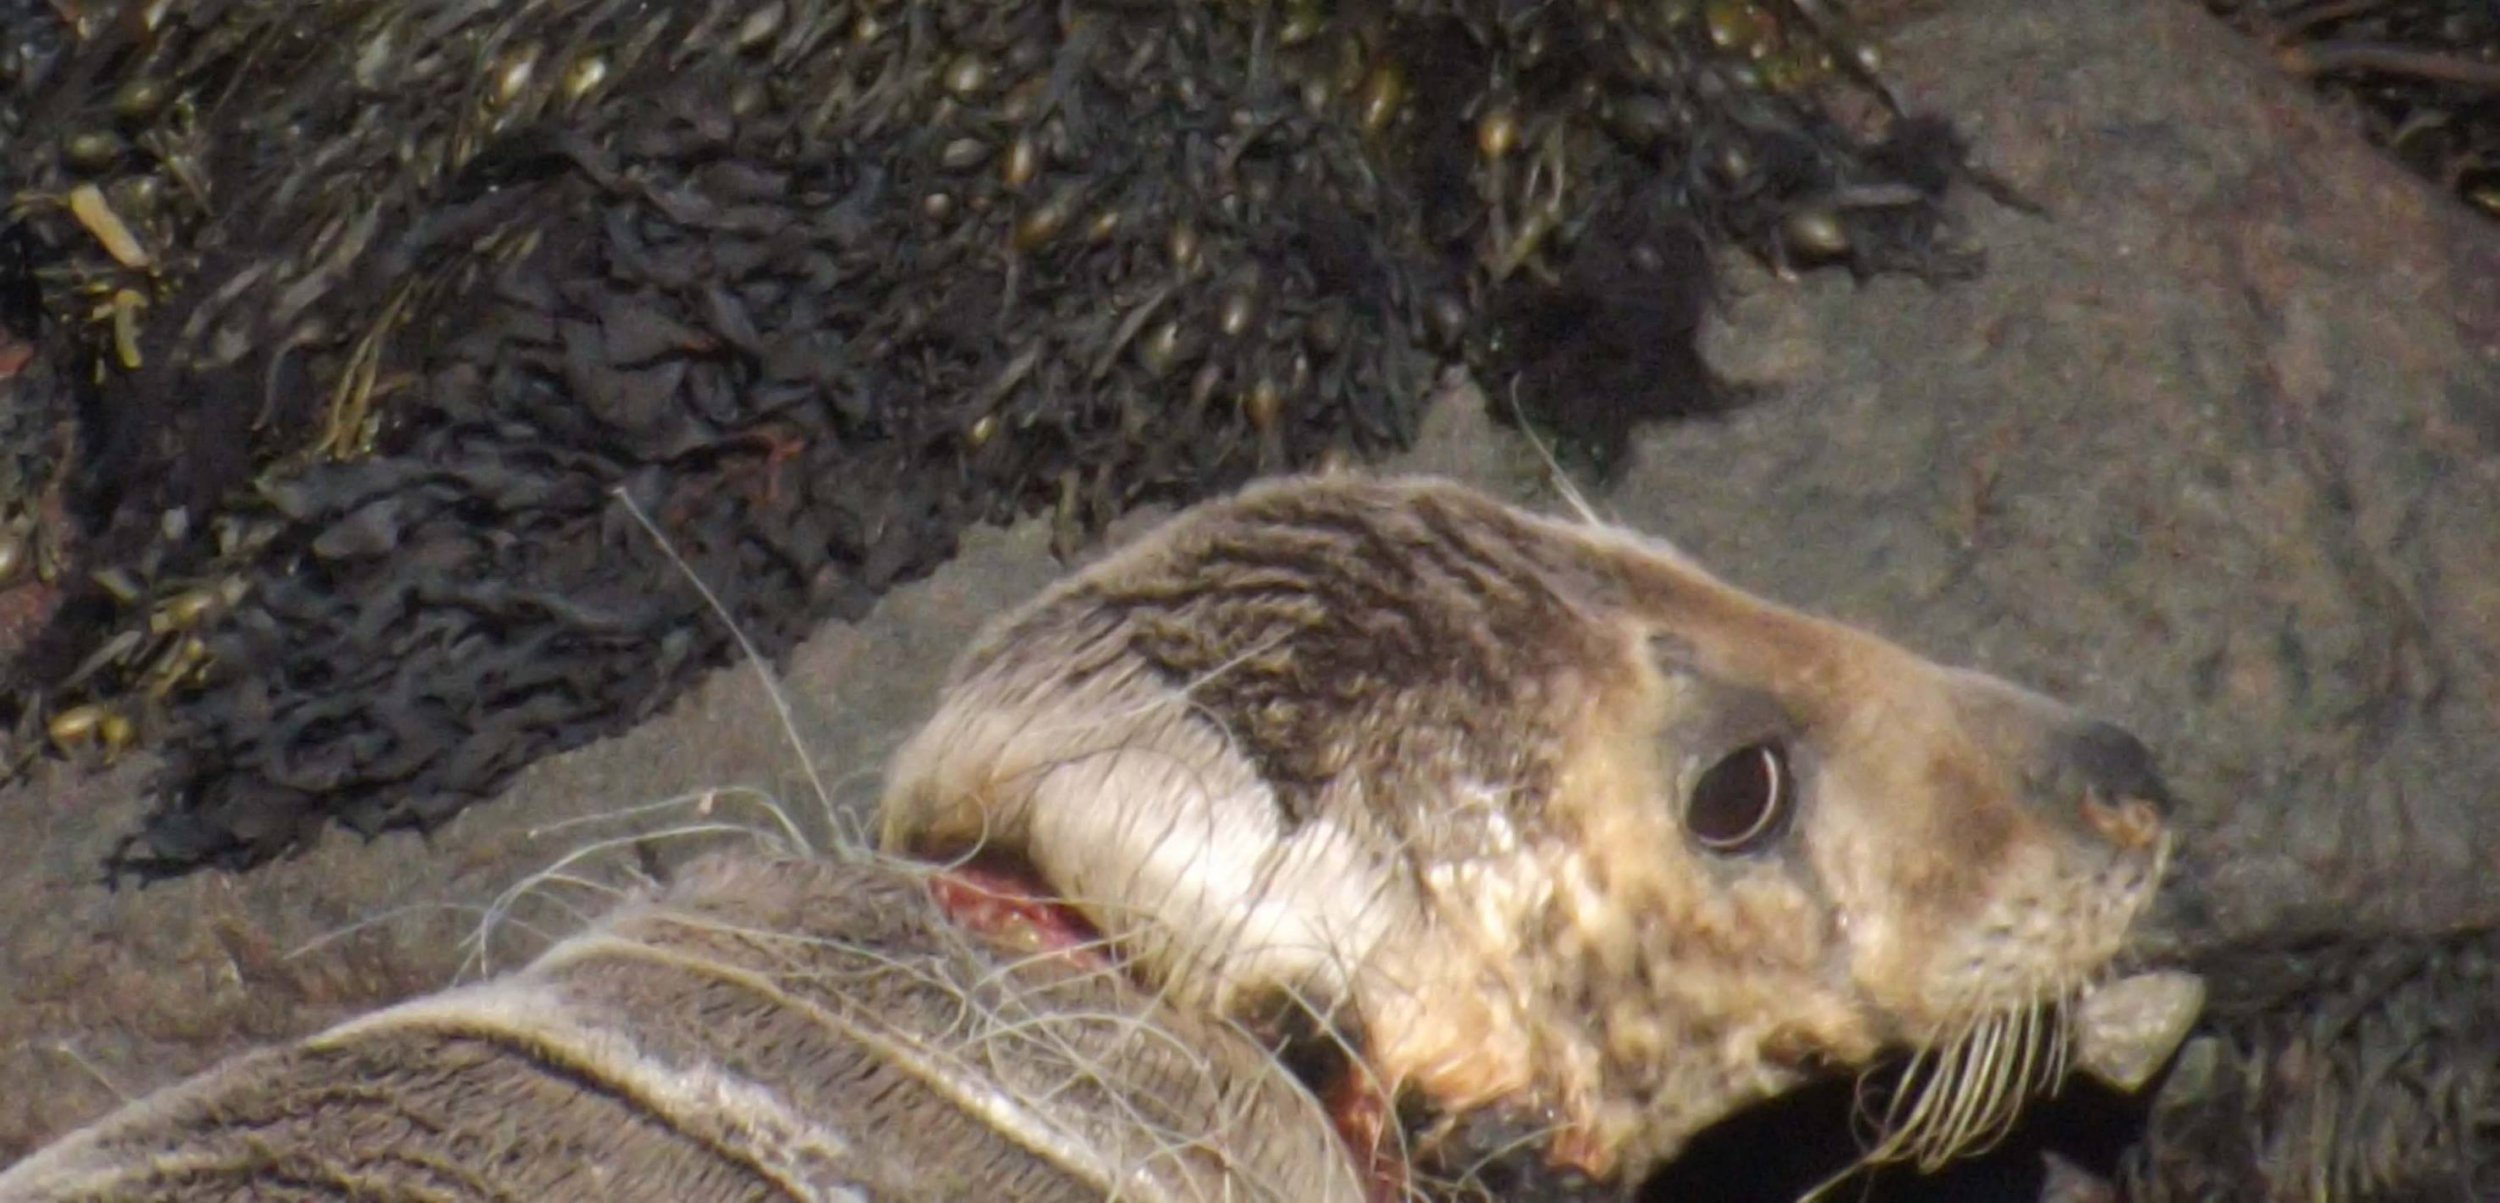 (Picture: Sharon Lawrence) These heartbreaking images show a severely injured seal being strangled by plastic waste on a beach. The young animal was pictured in Pembrokeshire, southwest Wales, with plastic fishing netting tangled around its neck. The images were captured by Sharon Lawrence who said she was 'heartbroken' to see the seal in such distress.